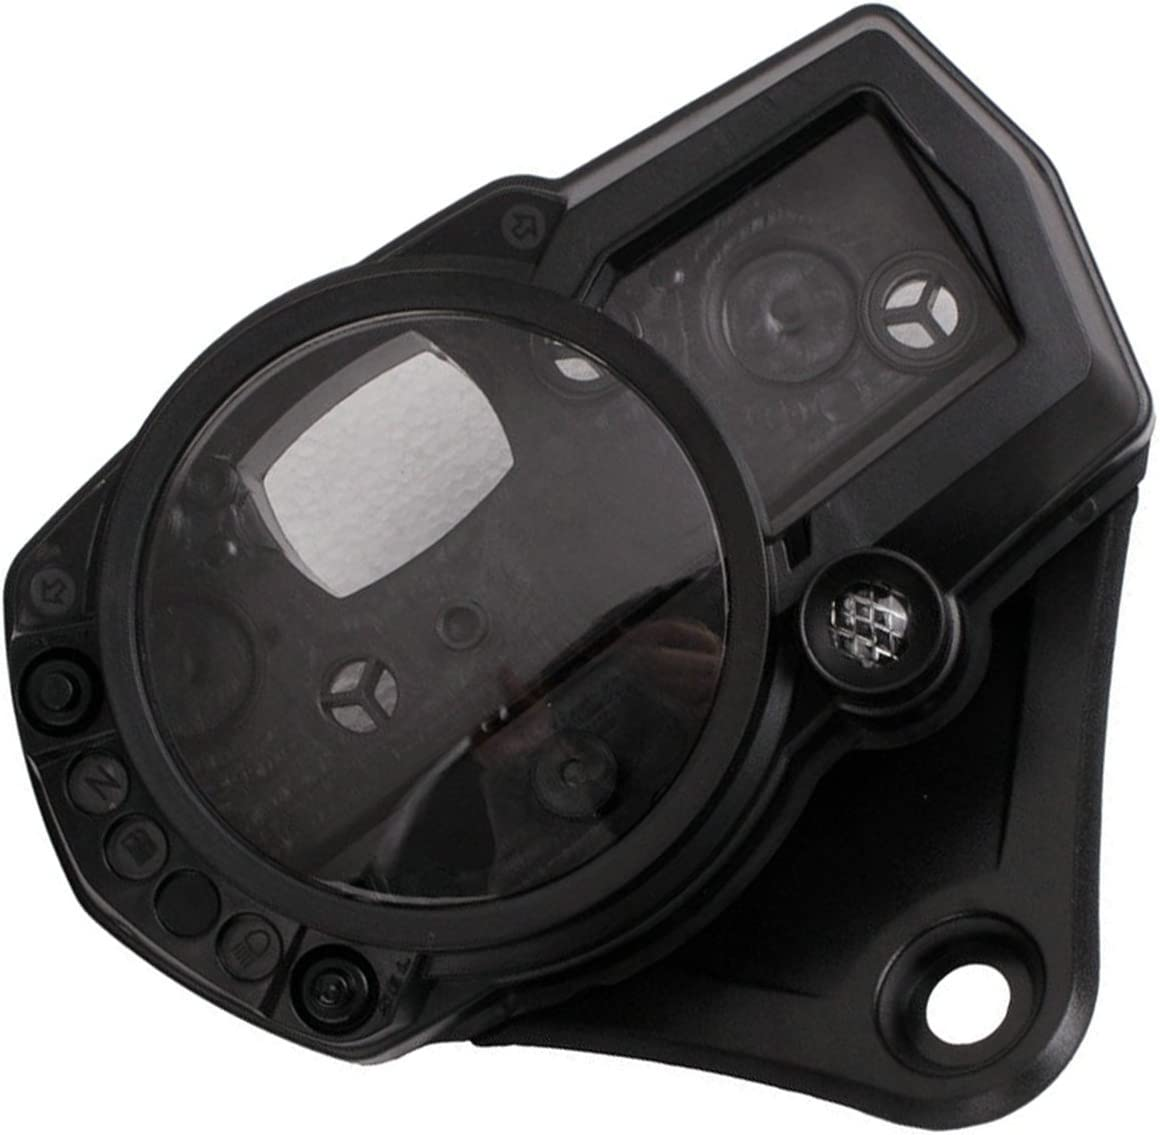 Yibid Animer and price revision SpeedoMeter Gauge Case Cover Excellence Tachometer Shell Plastic ABS